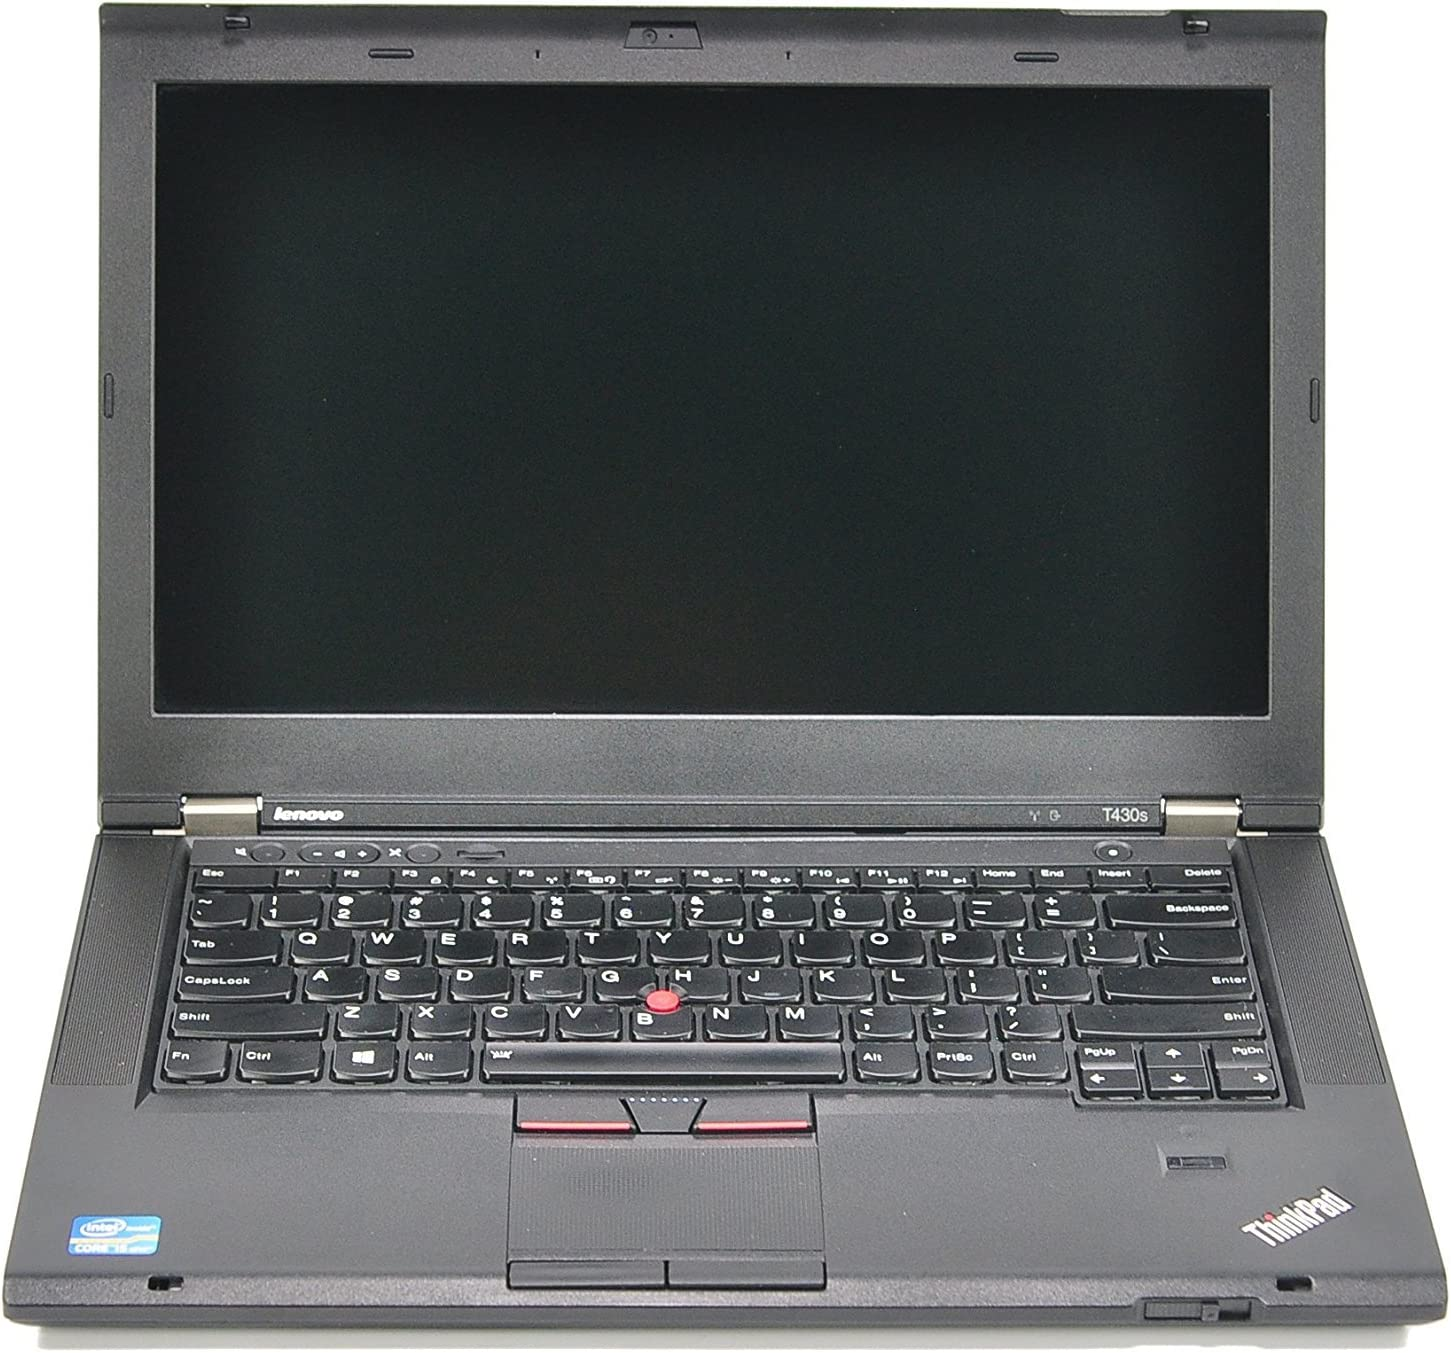 Lenovo Thinkpad T430s 14in HD Business Performance Laptop Computer PC, Intel Dual Core i5-3320M up to 3.3GHz, 8GB Ram, 256GB SSD, DVD, Bluetooth, Windows 10 Professional (Renewed)